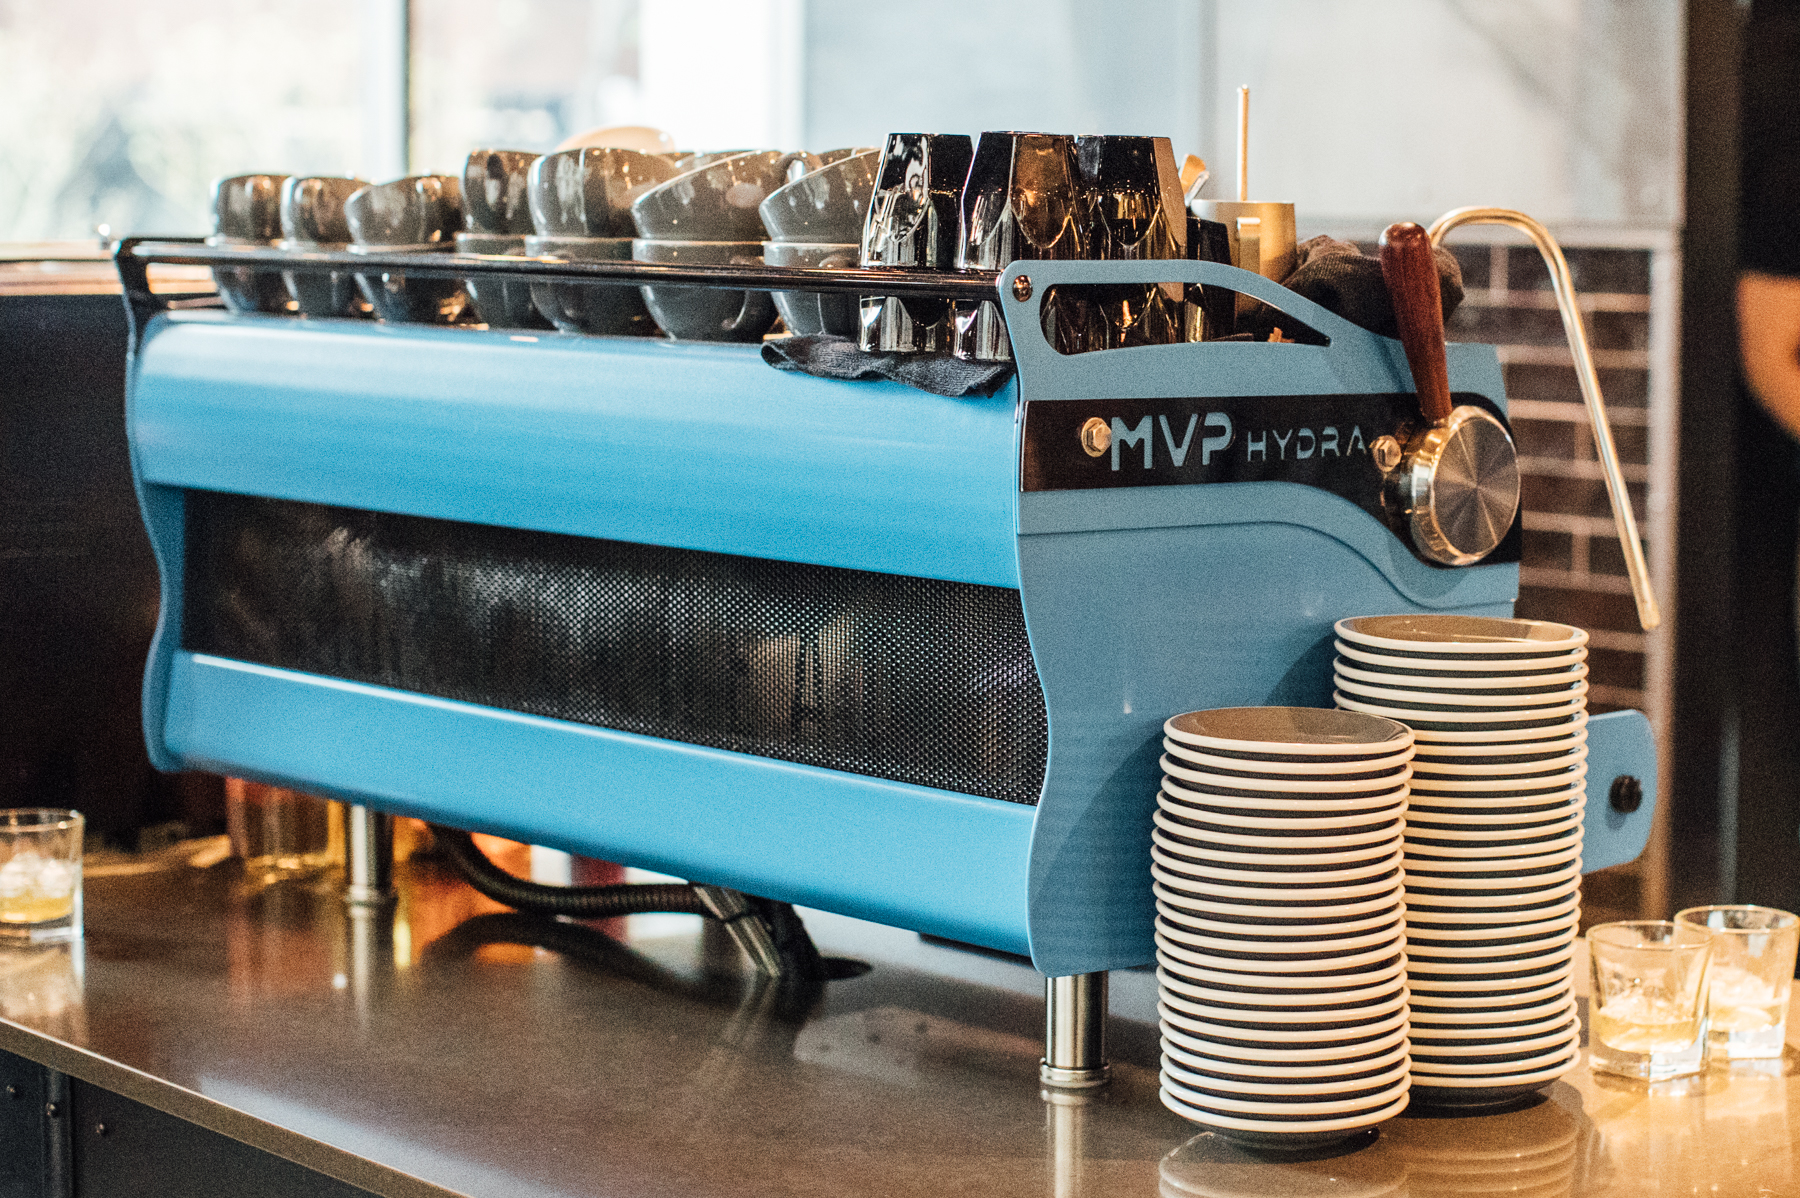 The backside of a blue Synesso M V P Hydra at Anchorhead Coffee in Seattle, Washington.